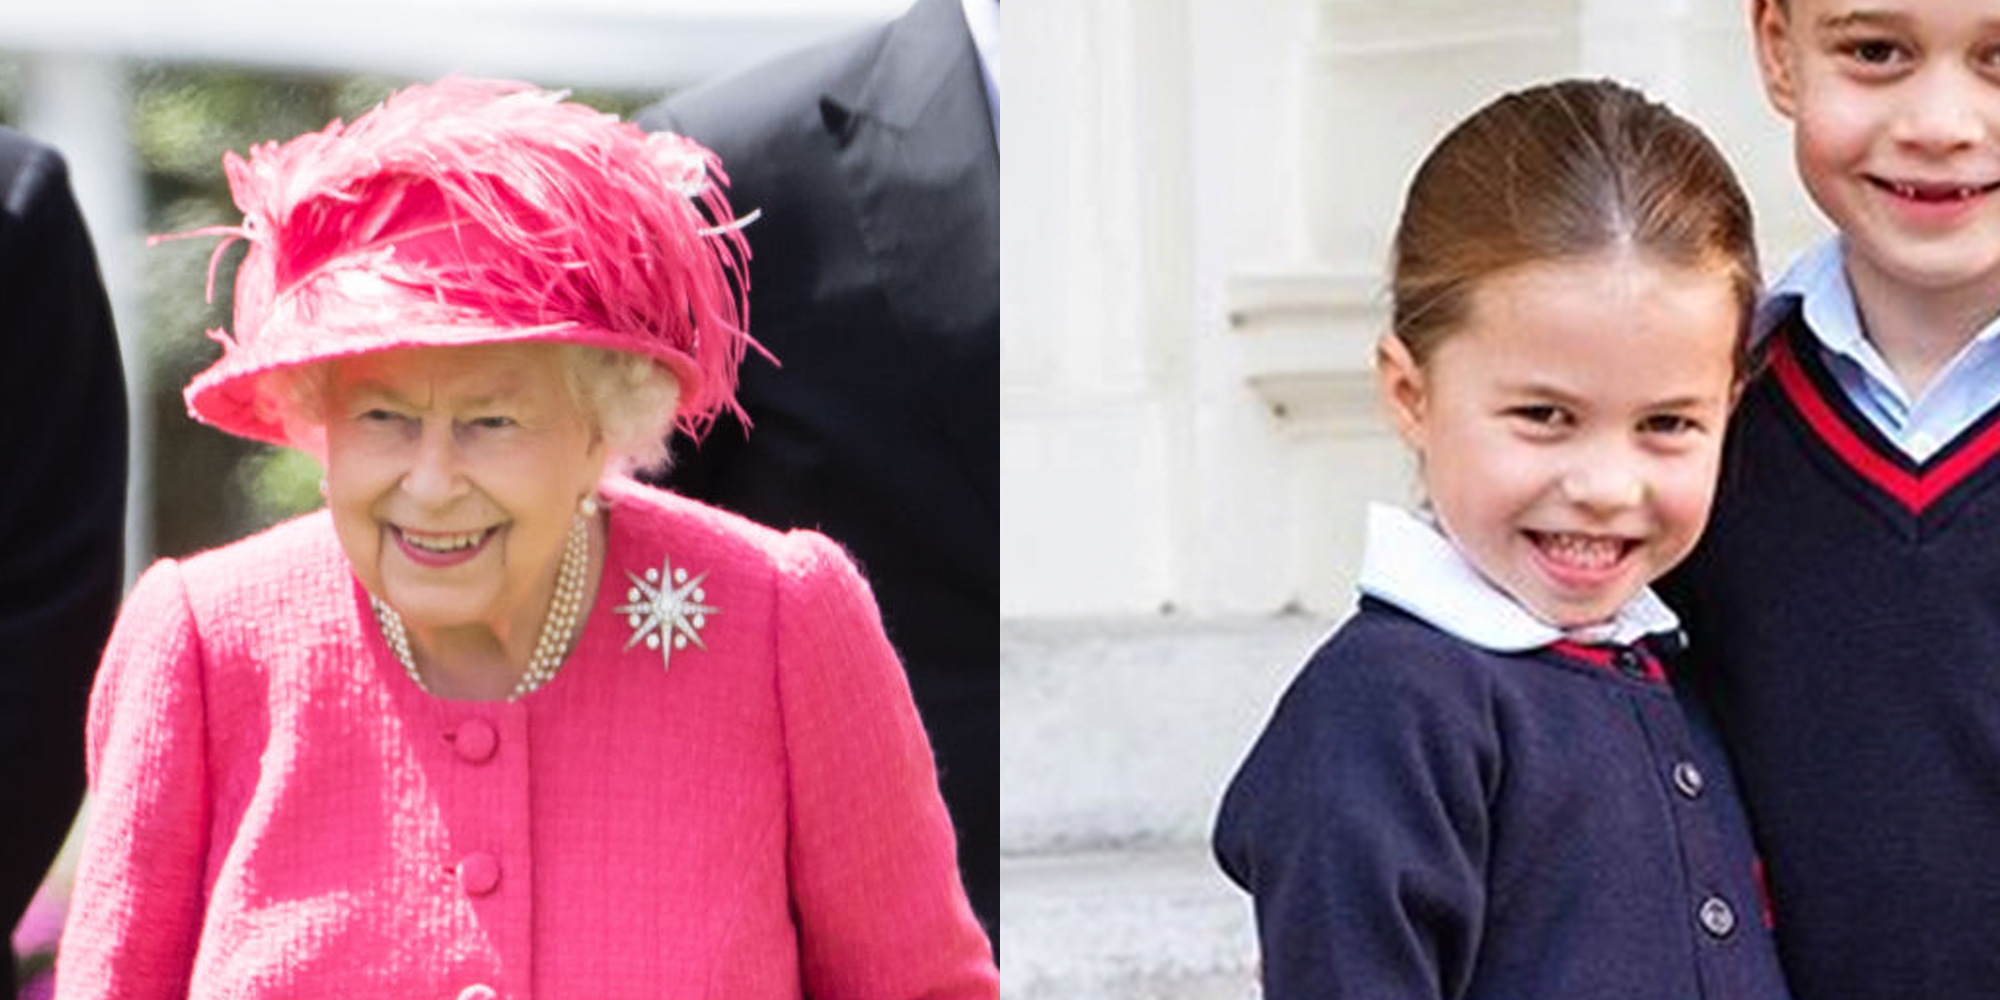 Princess Charlotte Looks Just Like In Her First Day Of School Photo